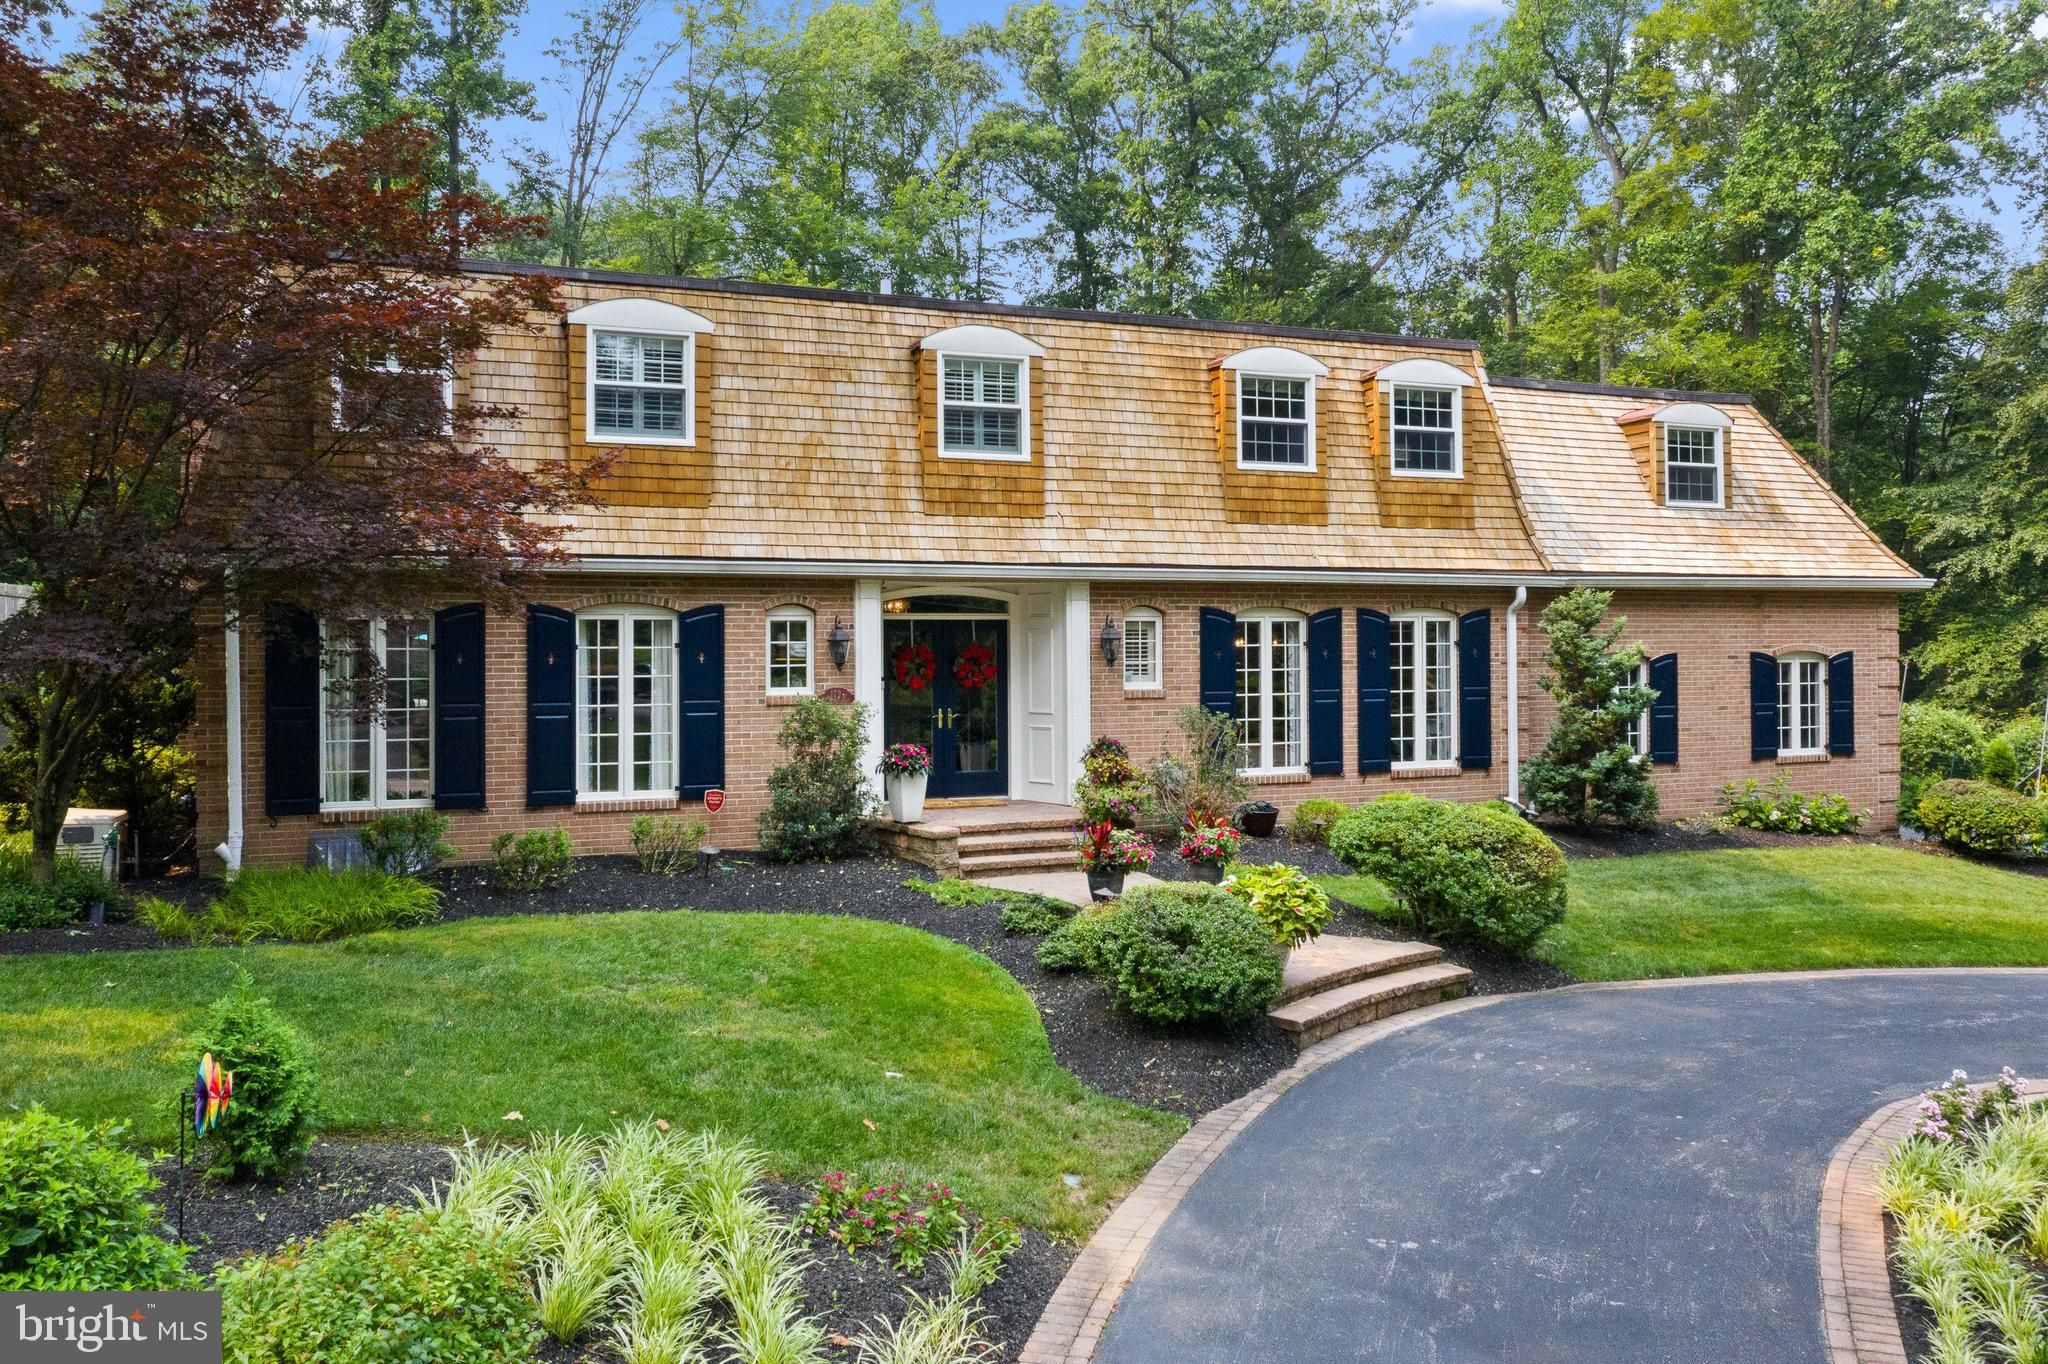 Move right into this traditional 2 story colonial in Wayne's Northwoods neighborhood! This home has a wonderful interior and exterior flow and plenty of updates! The first floor has an inviting Center Hall, bright Living Room, sizeable Home Office, gracious Dining Room, and Half Bath. The epicenter of the home is the open Kitchen, Family Room, and Breakfast Room area that overlooks and accesses the private backyard. The Kitchen has a large island (with seating and a wine fridge), top-of-the-line appliances, and custom cabinetry. The Family Room has a fireplace, a built-in bar area, and custom architectural touches. The Breakfast Room has a vaulted ceiling and is bathed in light. A long hallway off the Kitchen offers a pantry, more cabinetry, garage access door, laundry center, and an exit to the driveway. The entire first floor has beautiful hardwood floors. Upstairs, the Primary Bedroom Suite has a completely redesigned closet system and a renovated Primary Bath.  Down the hall is a large bedroom that has a built-in window seat and cabinetry, and a completely updated bathroom, and a private staircase to the first floor. There are two additional Bedrooms that have closet systems and custom built-in window seats. A fifth upstairs Room also has two built-in window seats and is used currently as a Guest Room (the closet is home to the new HVAC system.) A spacious Hall Bath with double sinks and bathtub complete this level.  The finished area of the basement has 2 lounge areas for TV viewing, an exercise room, and a gathering table/refrigerator area that make entertaining easy.   The exterior is professionally landscaped and has extensive hardscaping. The front yard is showcased by a circular driveway offering a dramatic entrance to the double glass front doors of the home. Additional parking is available on a side driveway that leads to a two-car garage. In the rear of the property, a Trex deck runs the width of the back of the house and can be accessed from the Living